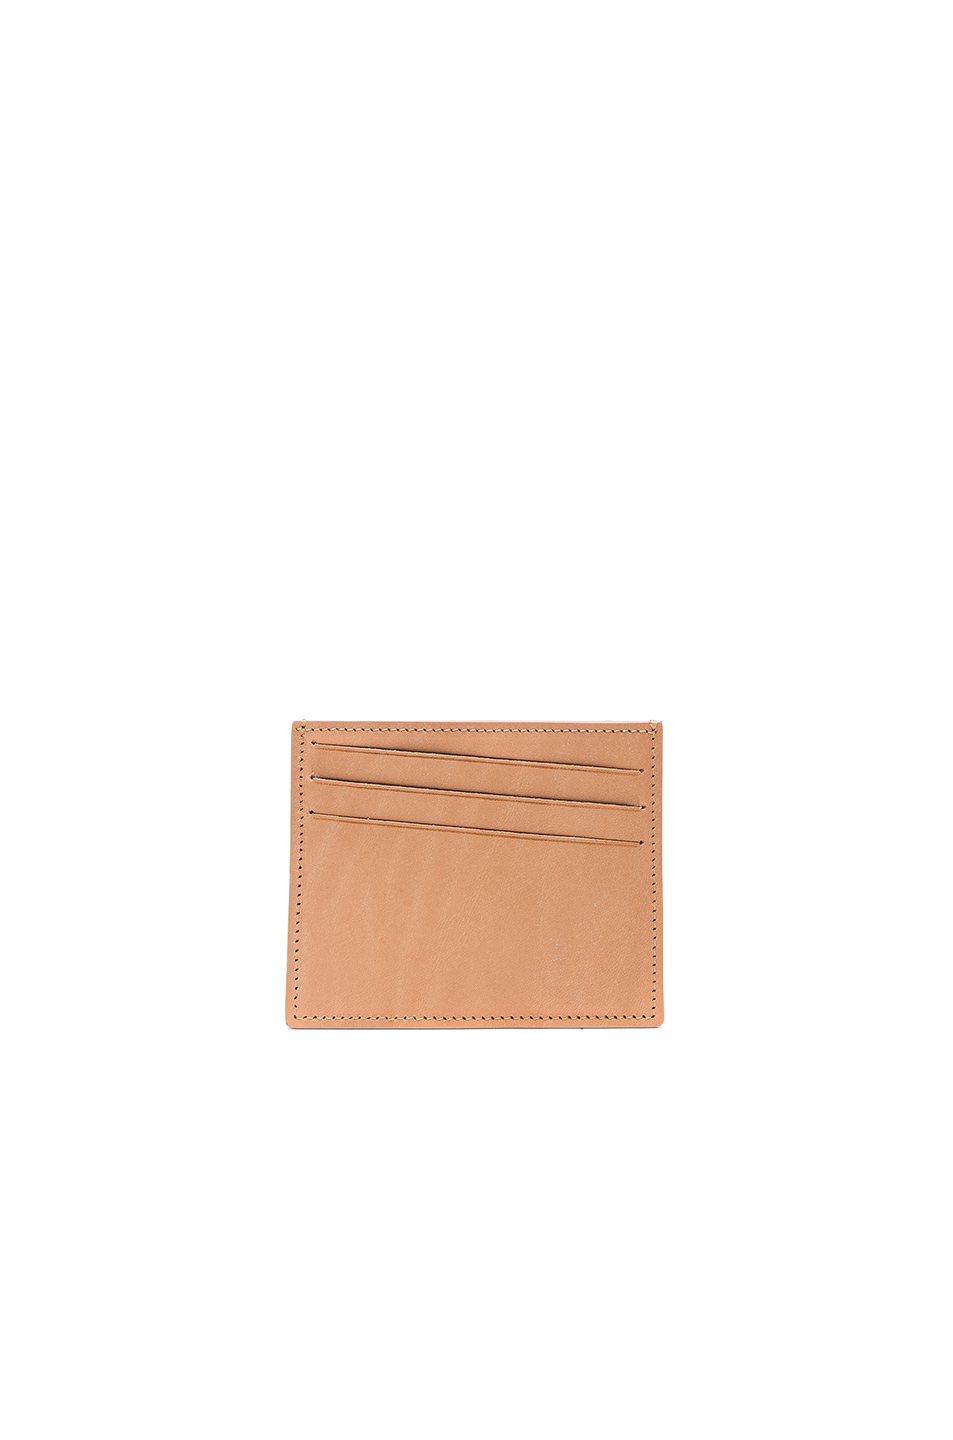 Maison Margiela Leather Cardholder in Neutrals